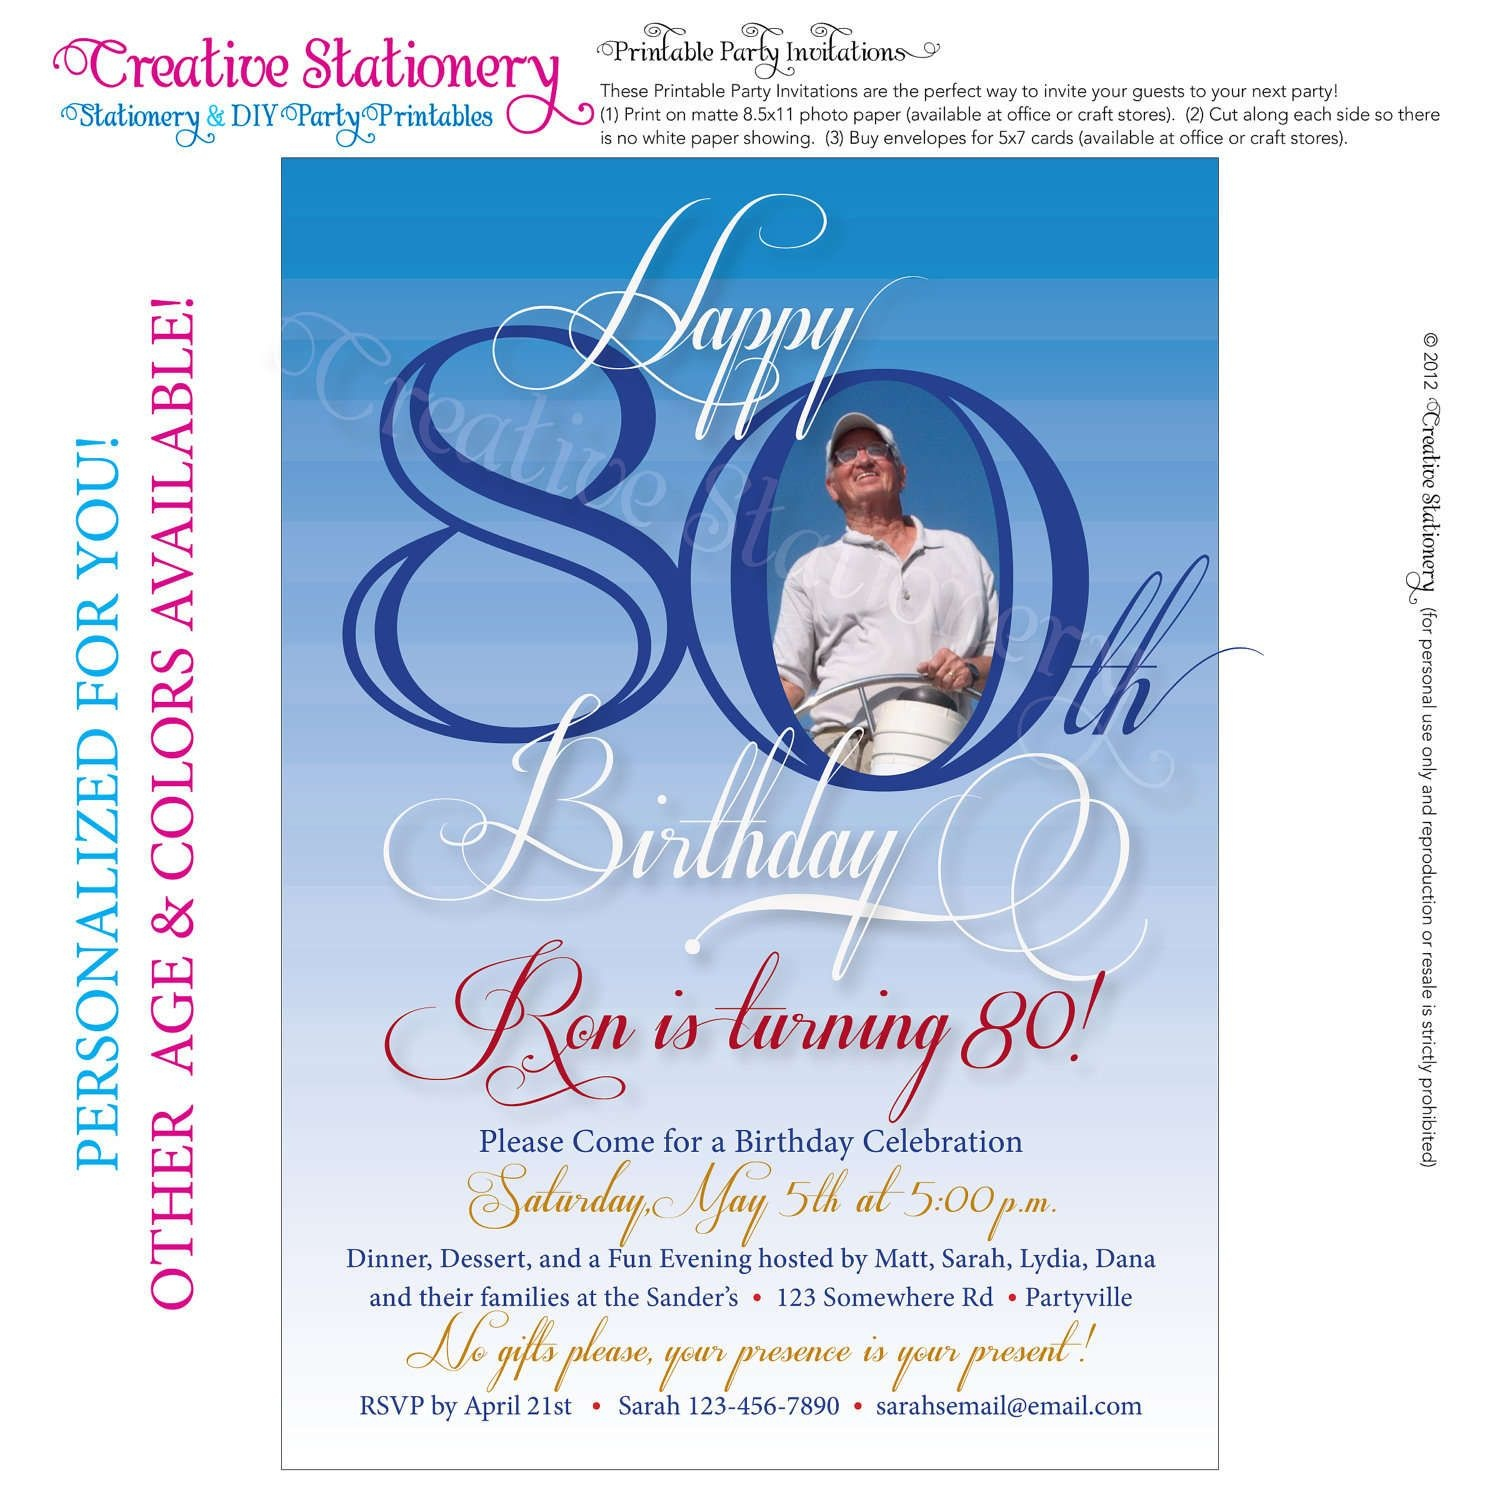 Free 80Th Birthday Invitations Templates | Free Printable - Printable Invitation Templates Free Download